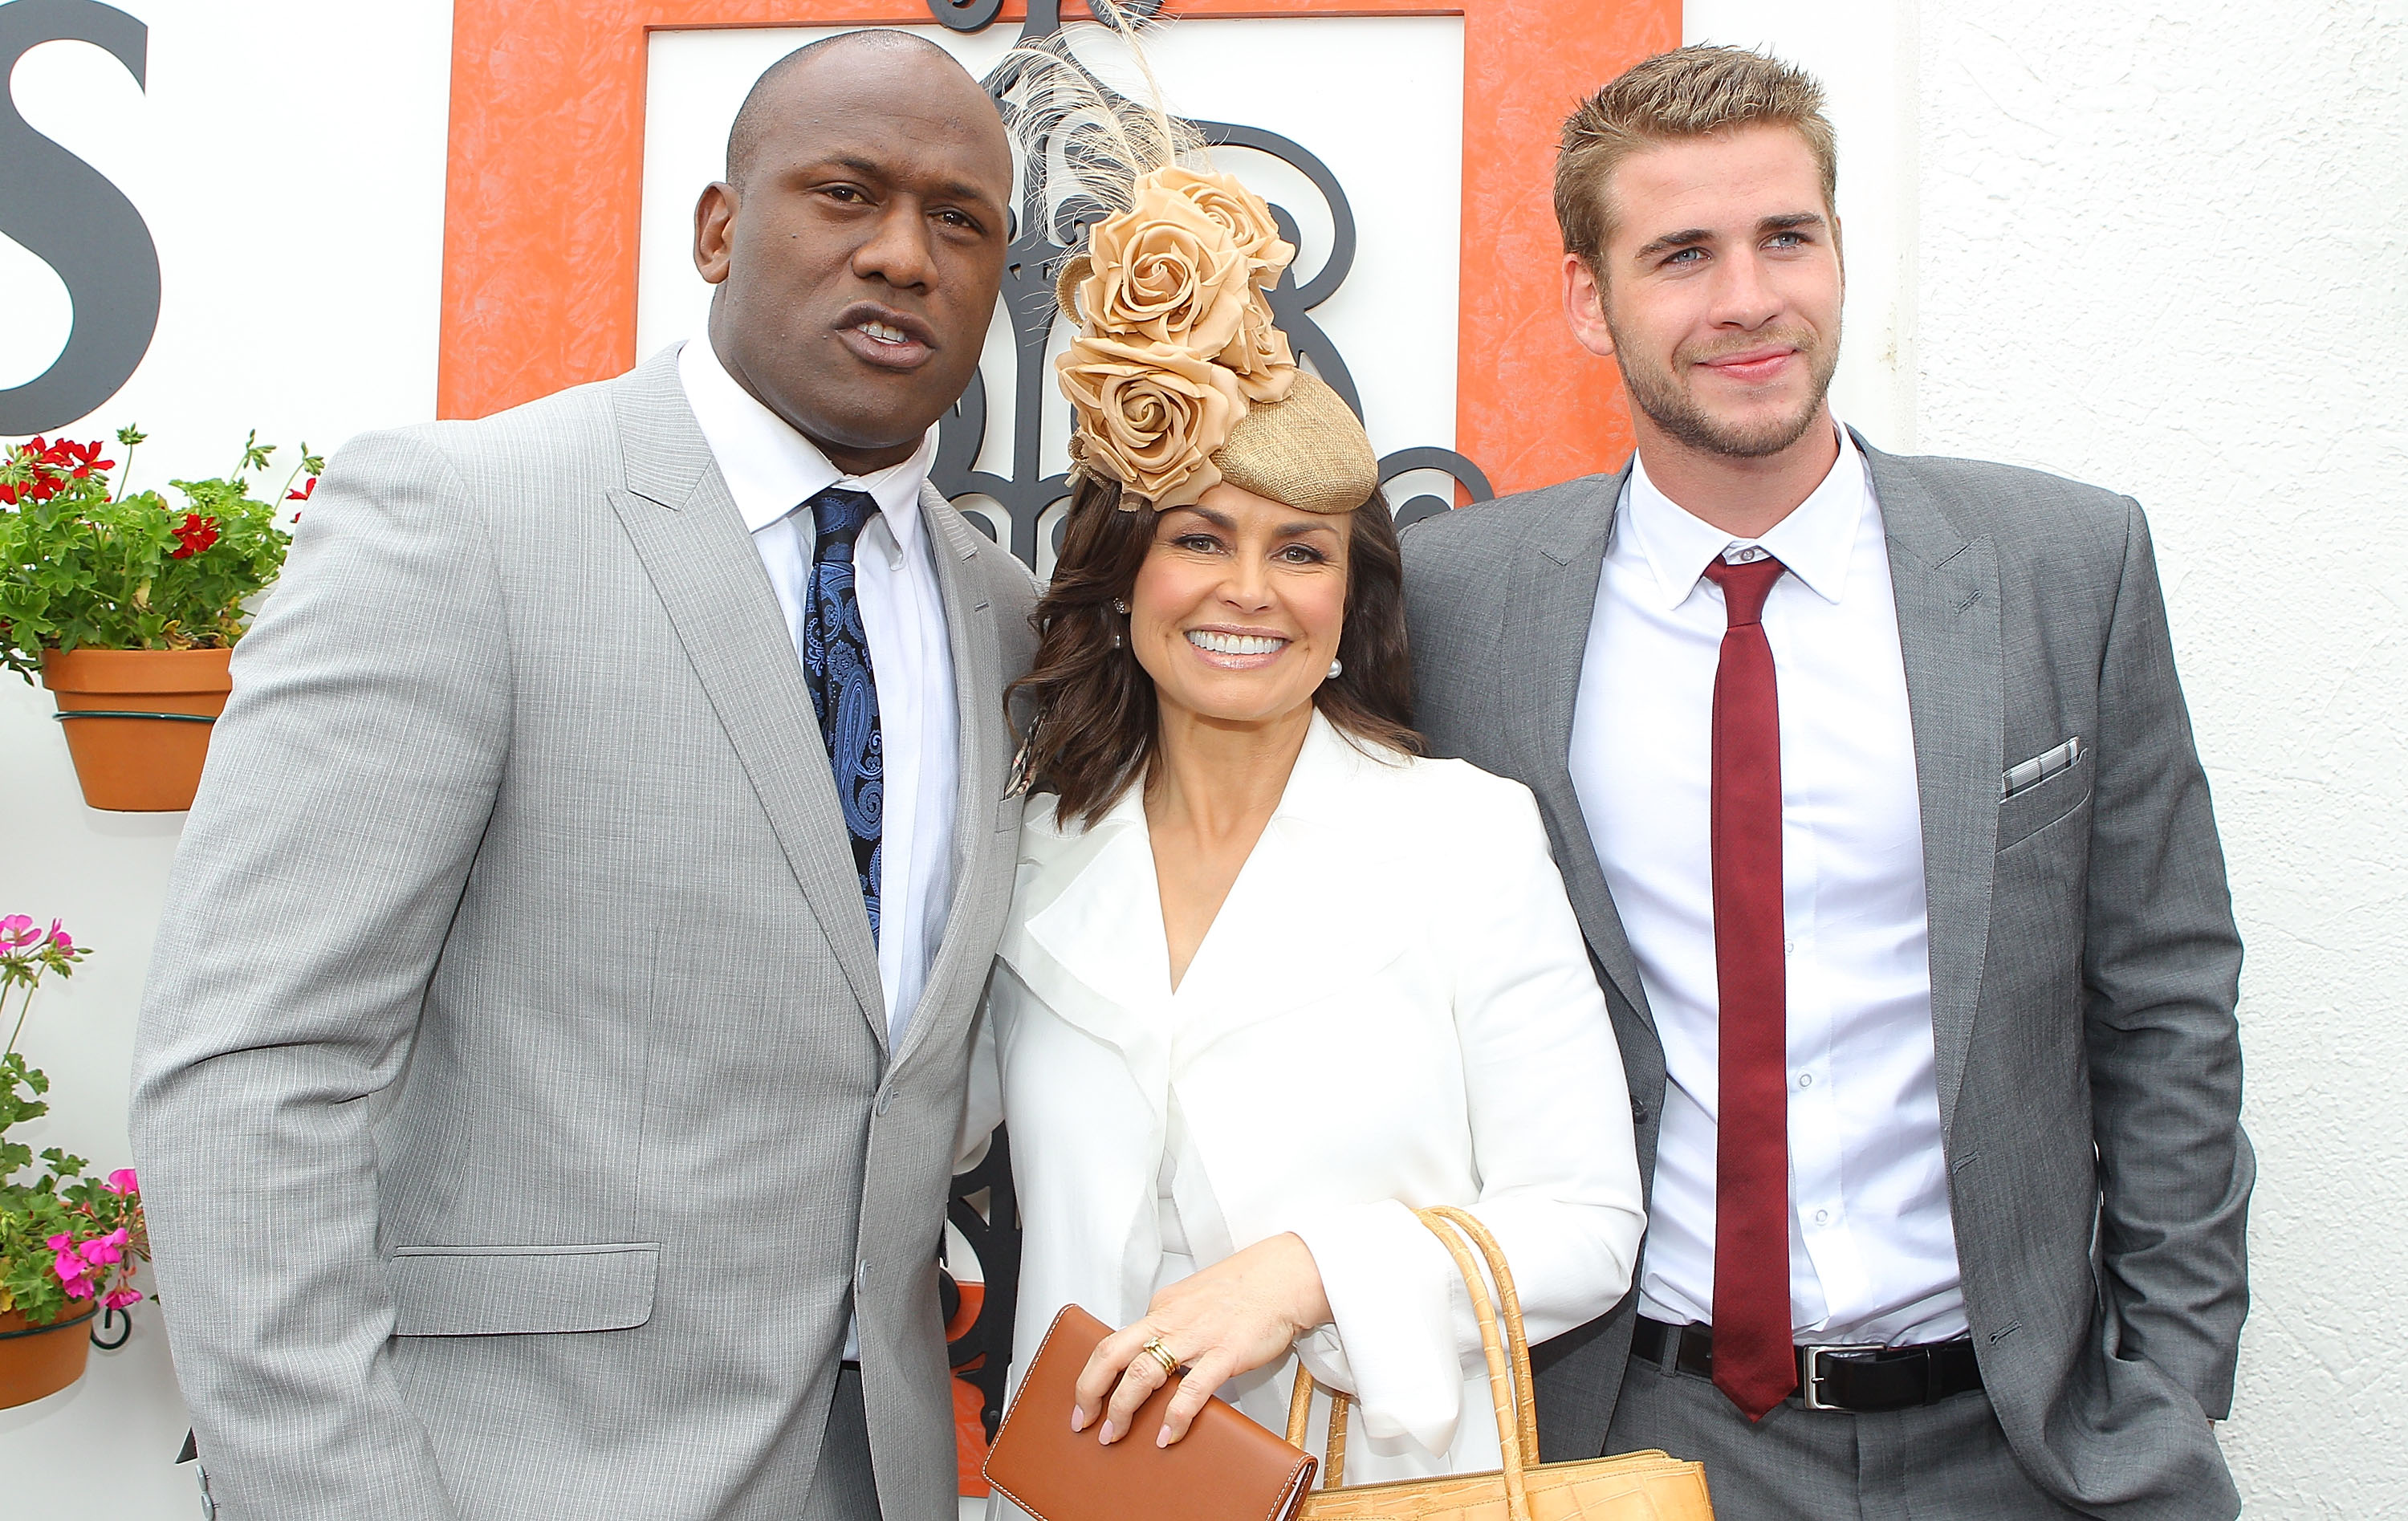 Wendell Sailor, Lisa Wilkinson and Liam Hemsworth